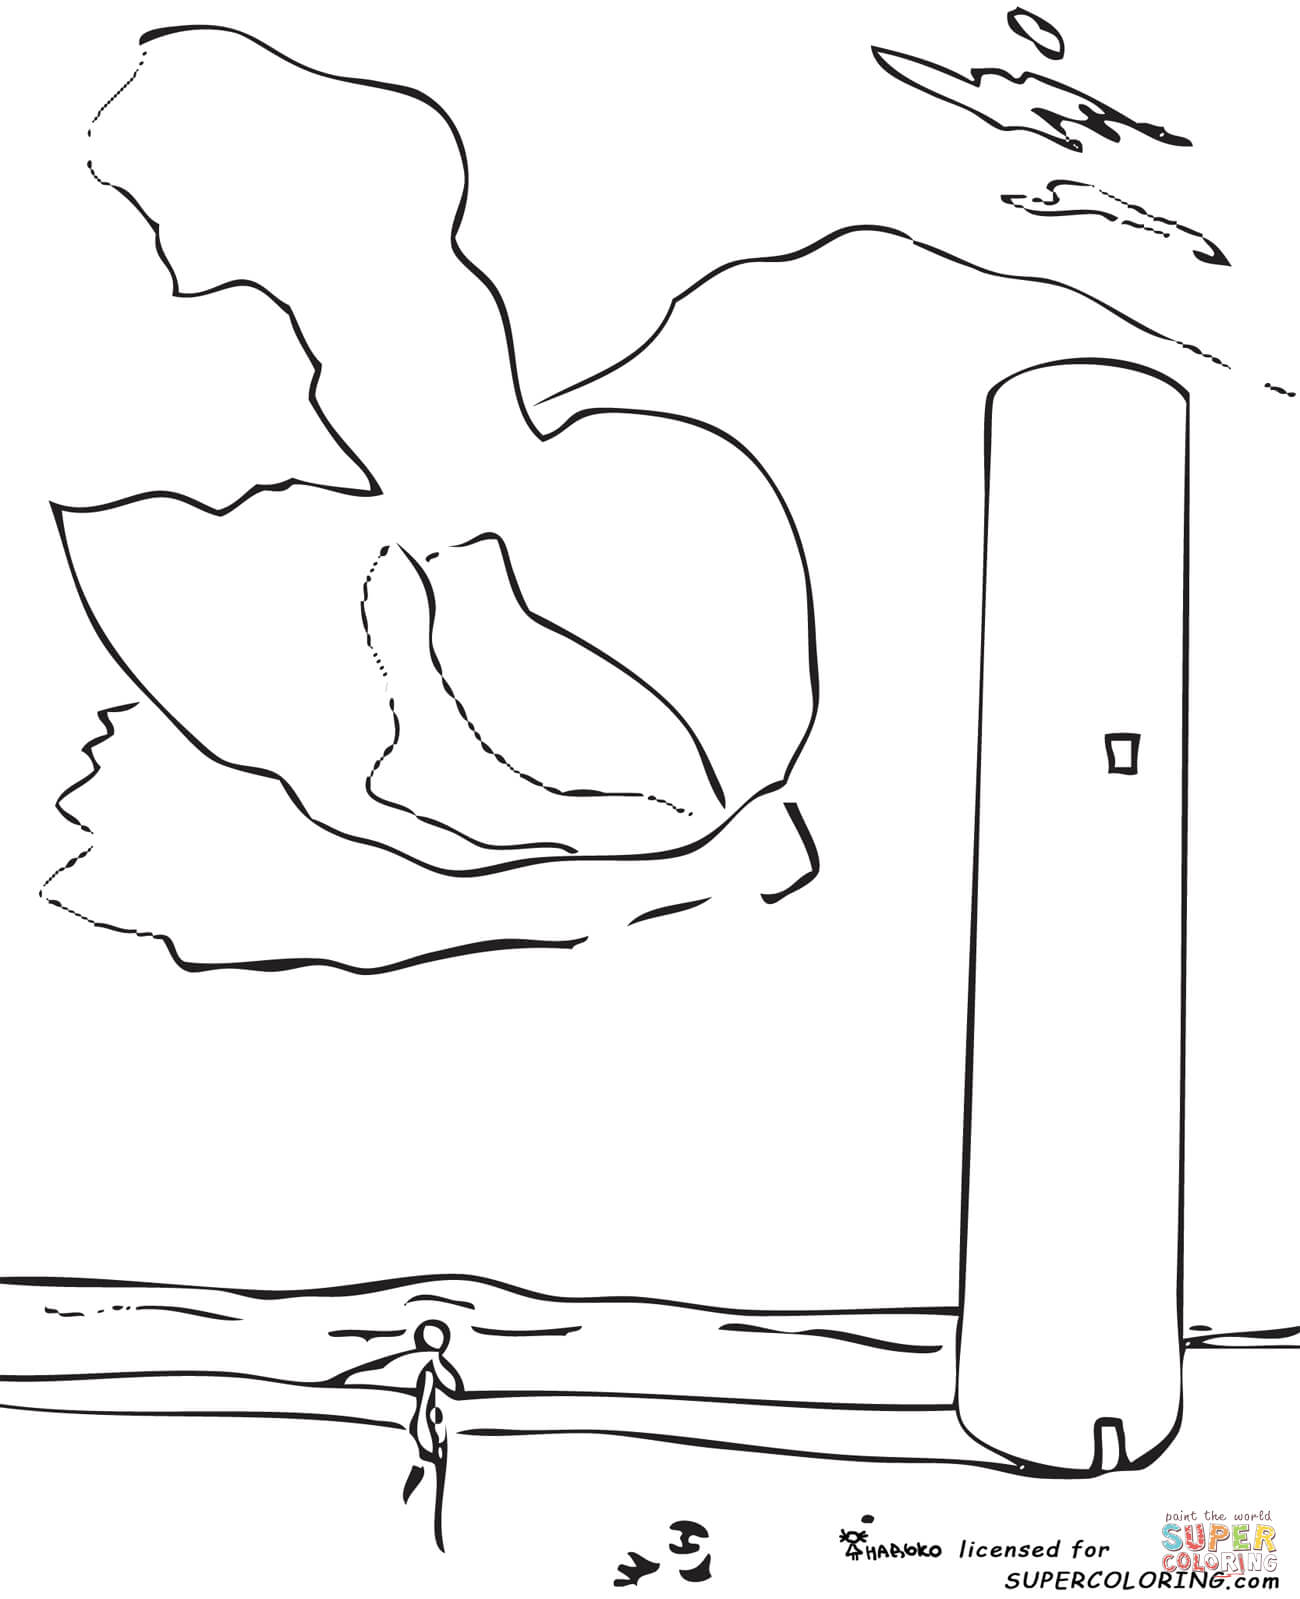 The Tower By Salvador Dali Coloring Page